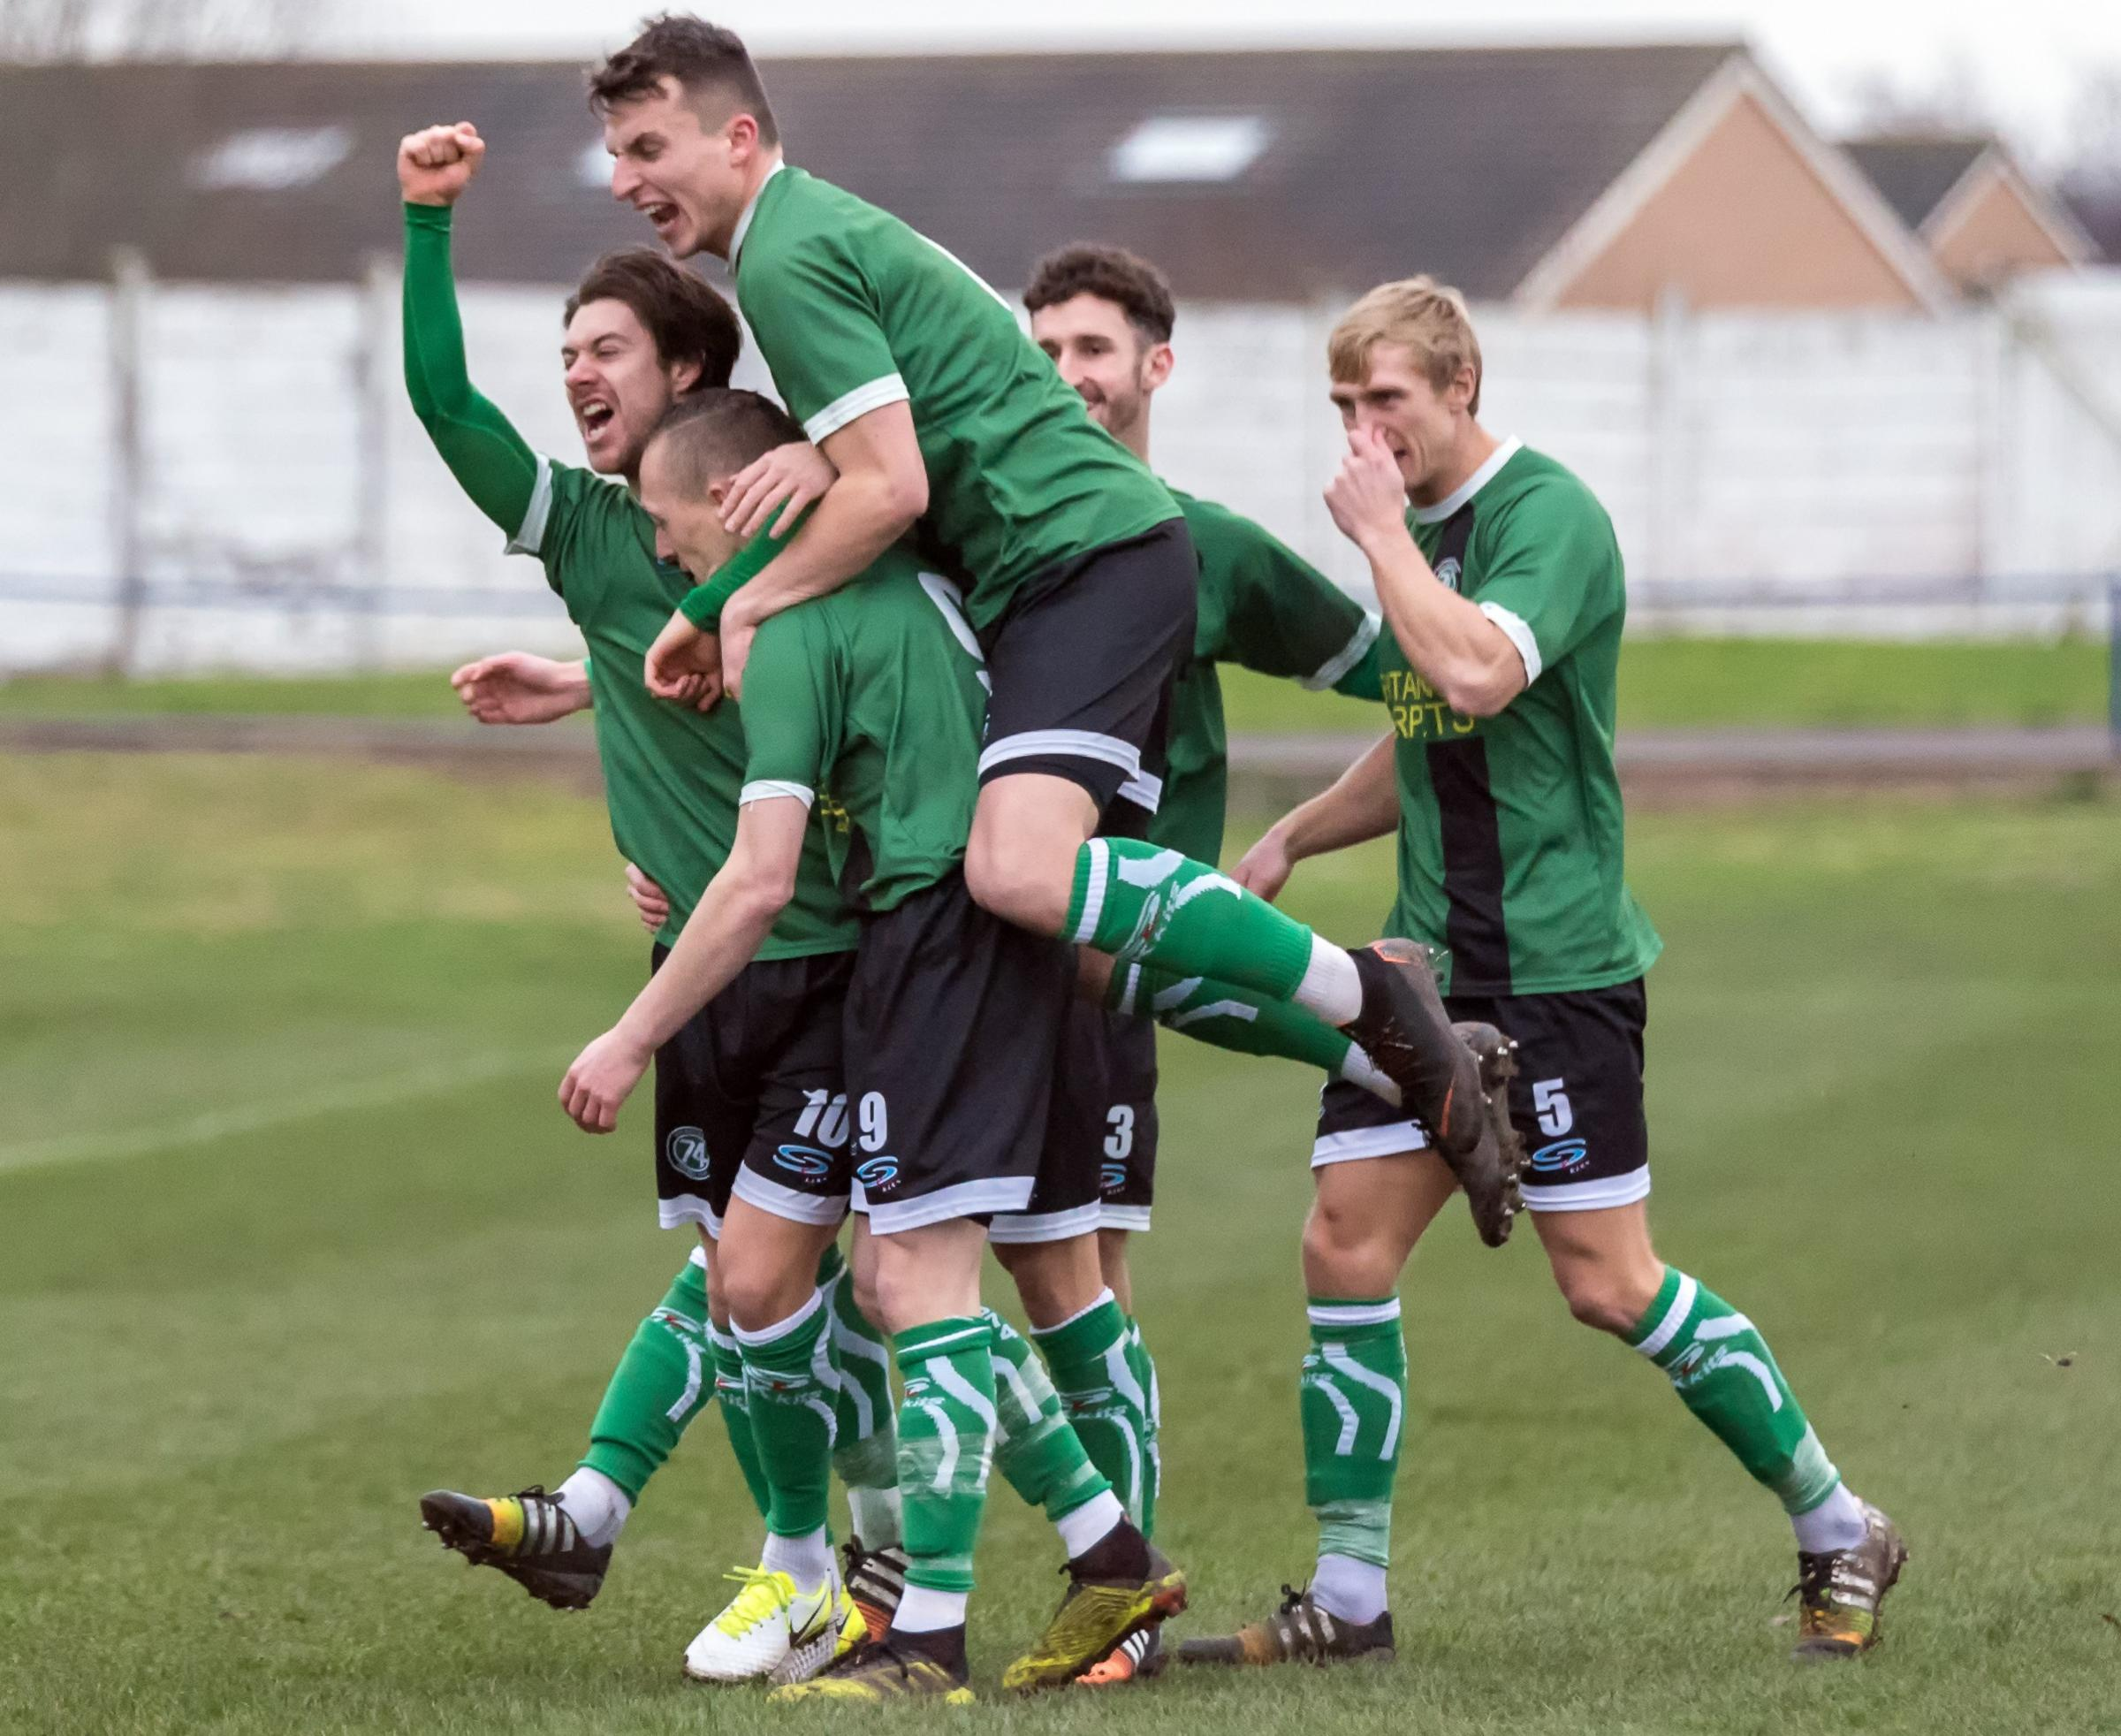 1874 Northwich players congratulate Scott McGowan after a rehearsed corner routine comes led to their opening goal against Congleton Town at Barton Stadium on Saturday. Picture: Ian Dutton